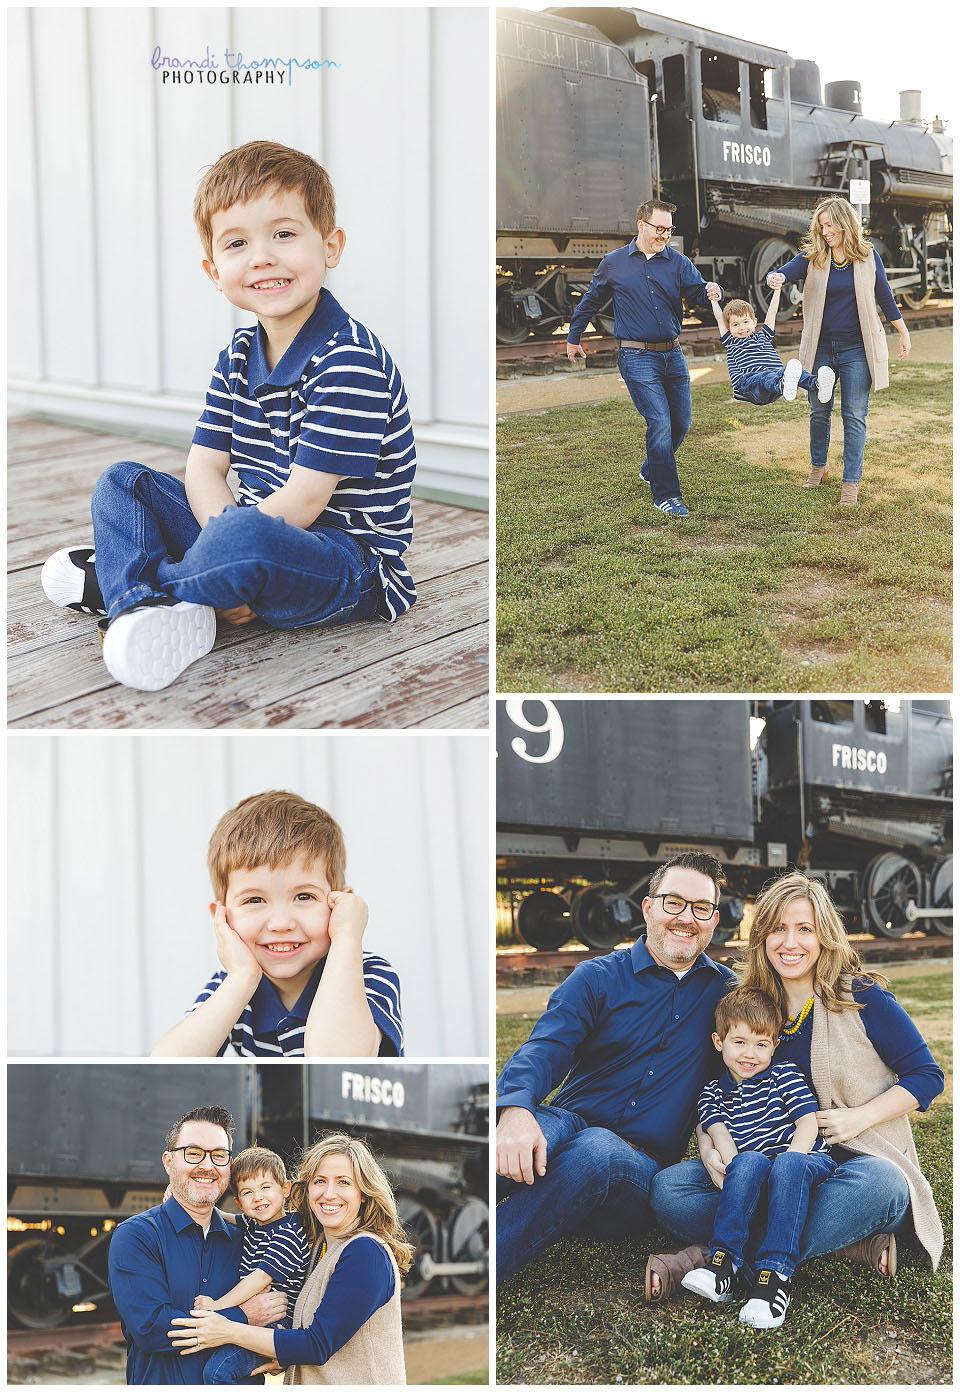 outdoor family session with train and log cabin in frisco, tx mom, dad and young son